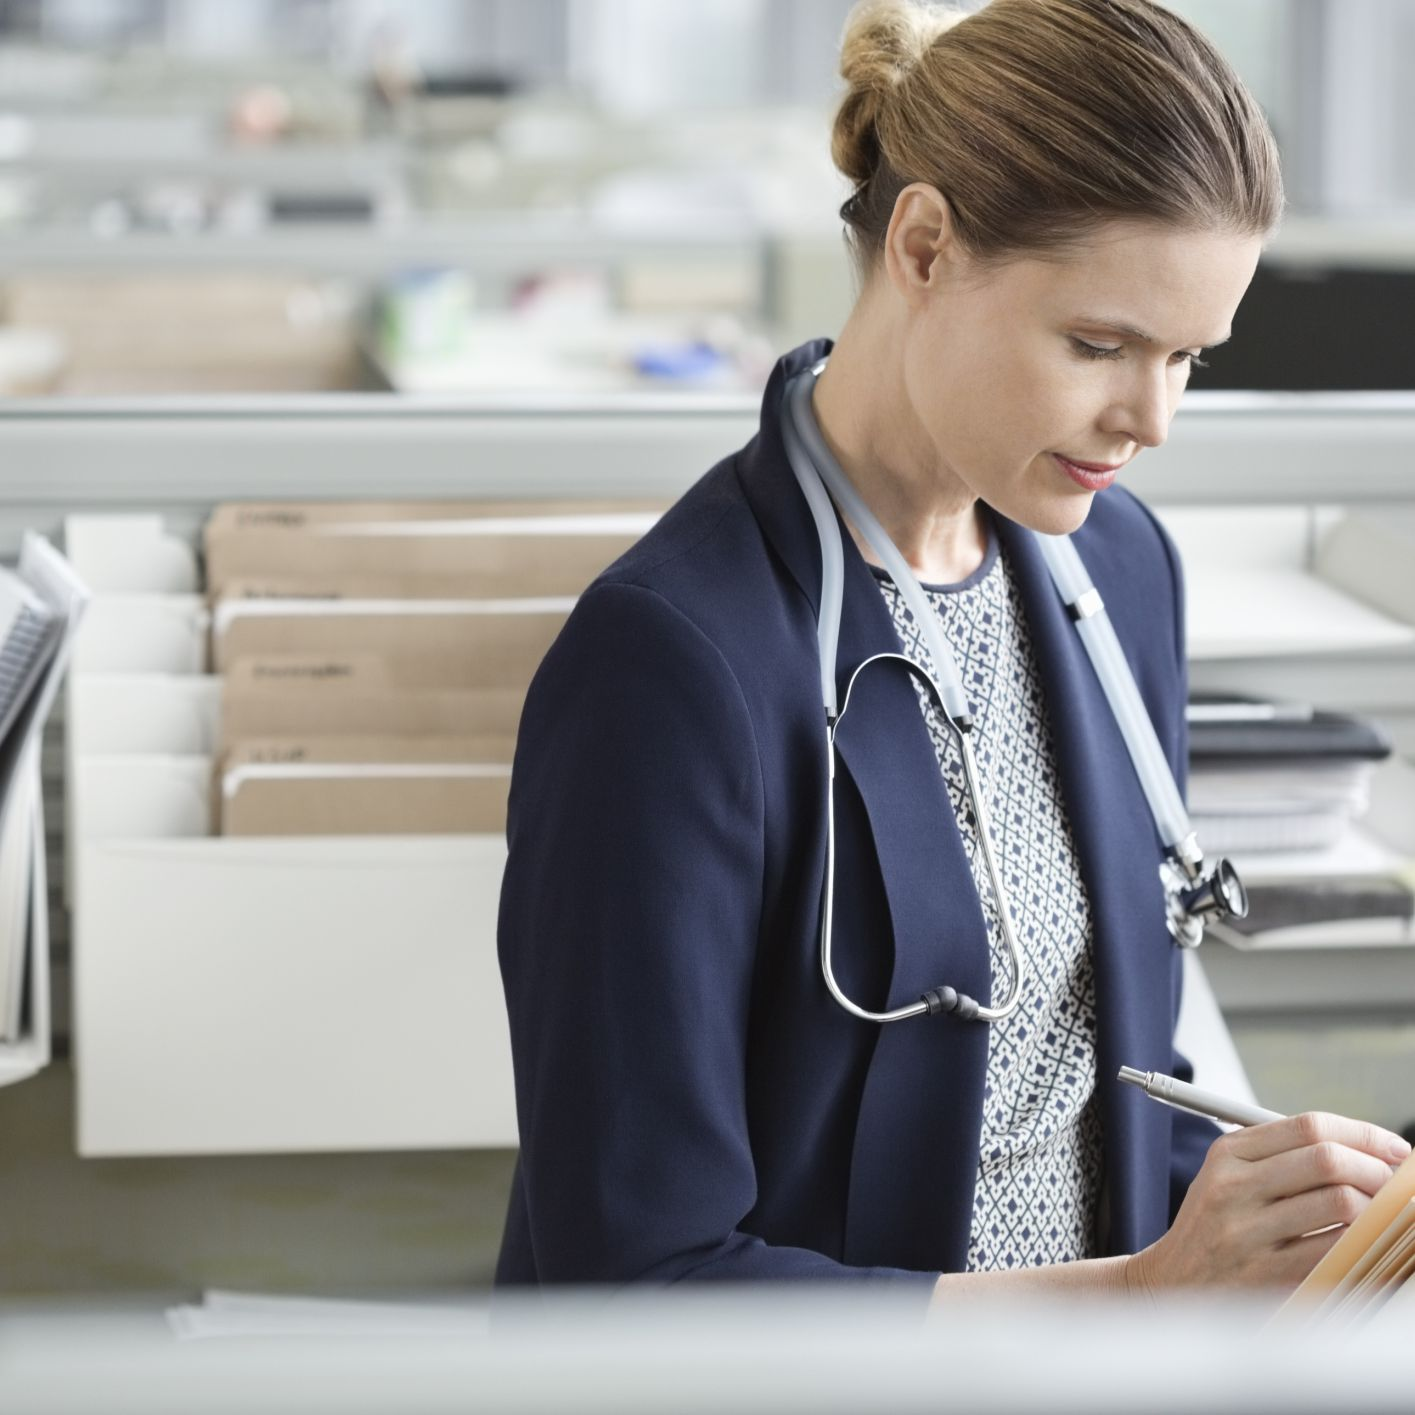 What Are ICD-10 Codes and How Do They Work?